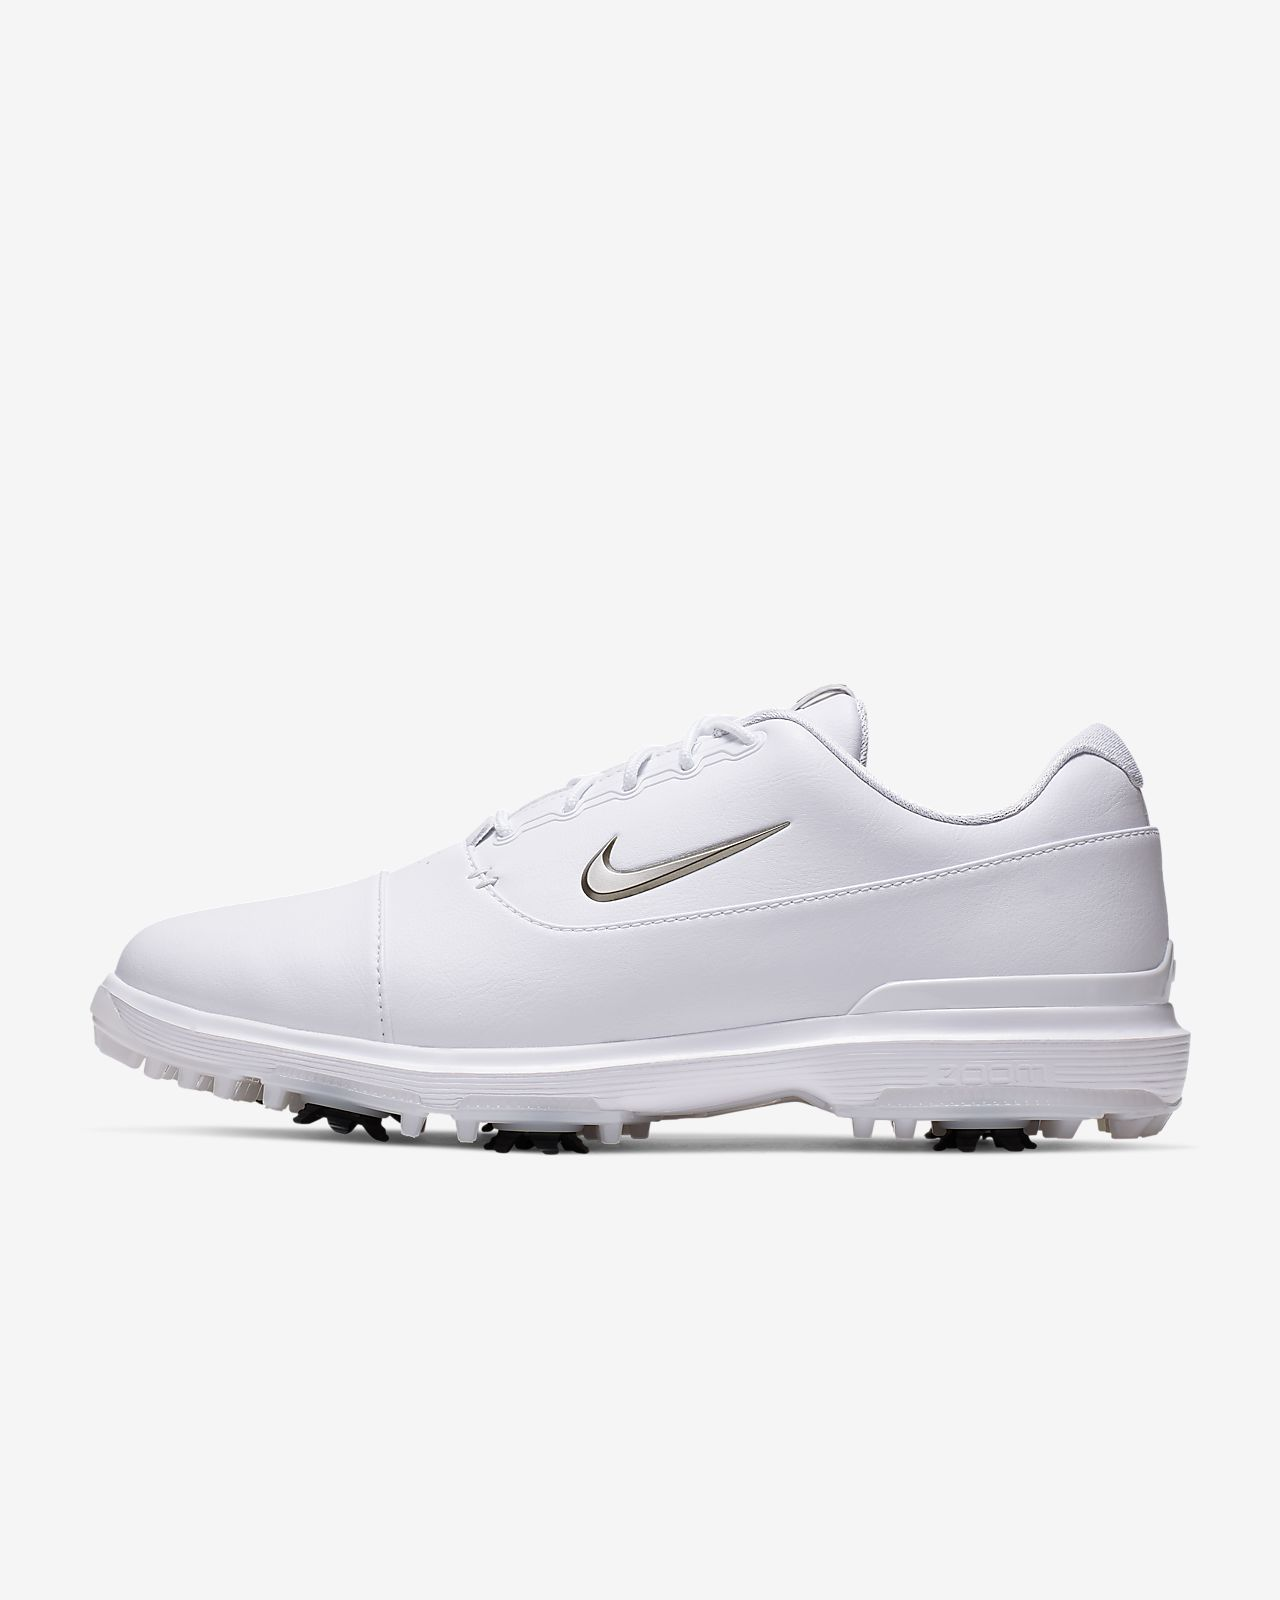 Nike Air Zoom Victory Pro Men's Golf Shoe